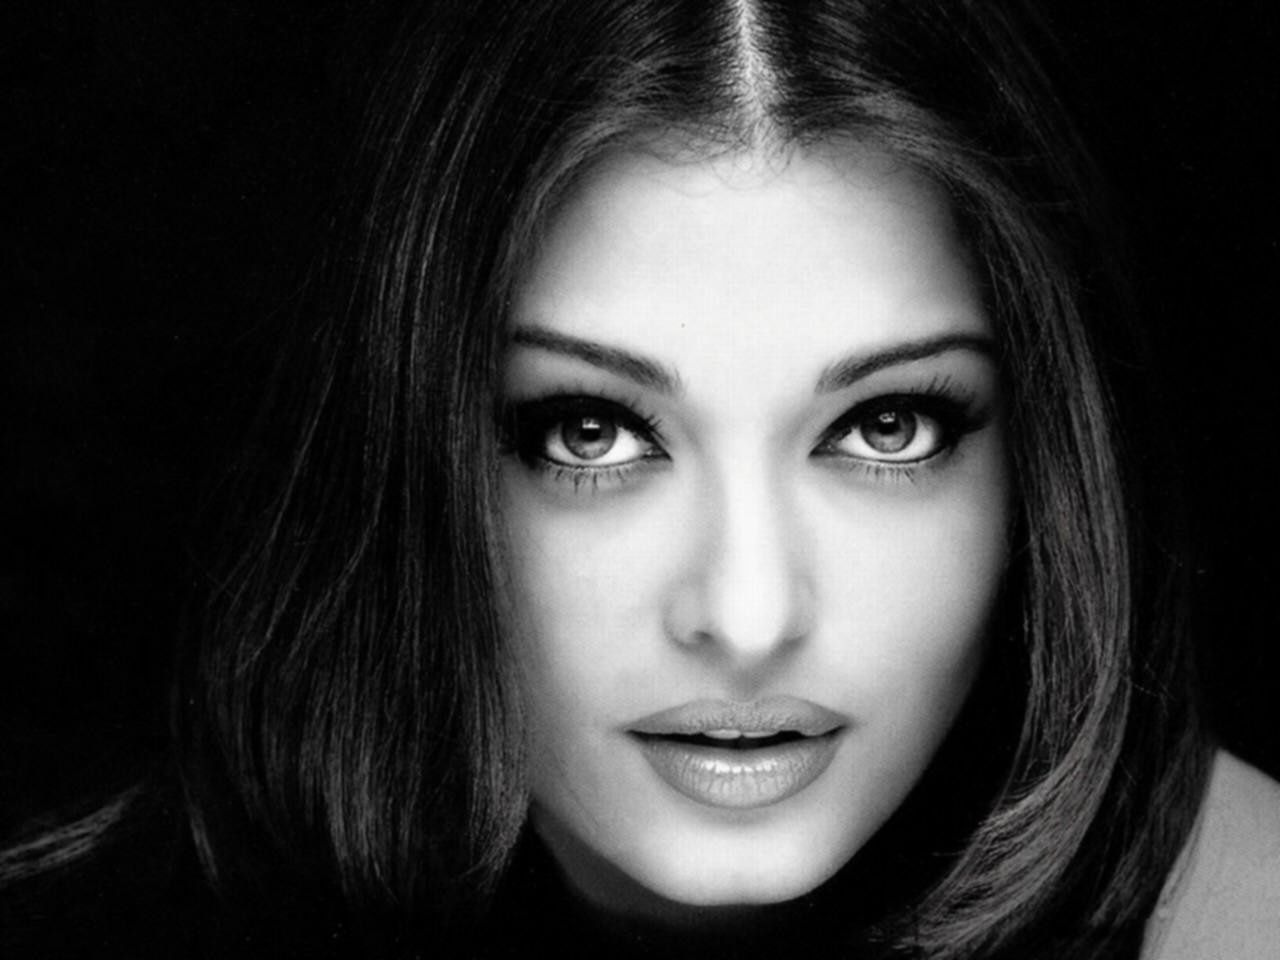 Gorgeous Most Beautiful Eyes Aishwarya Rai Beautiful Eyes